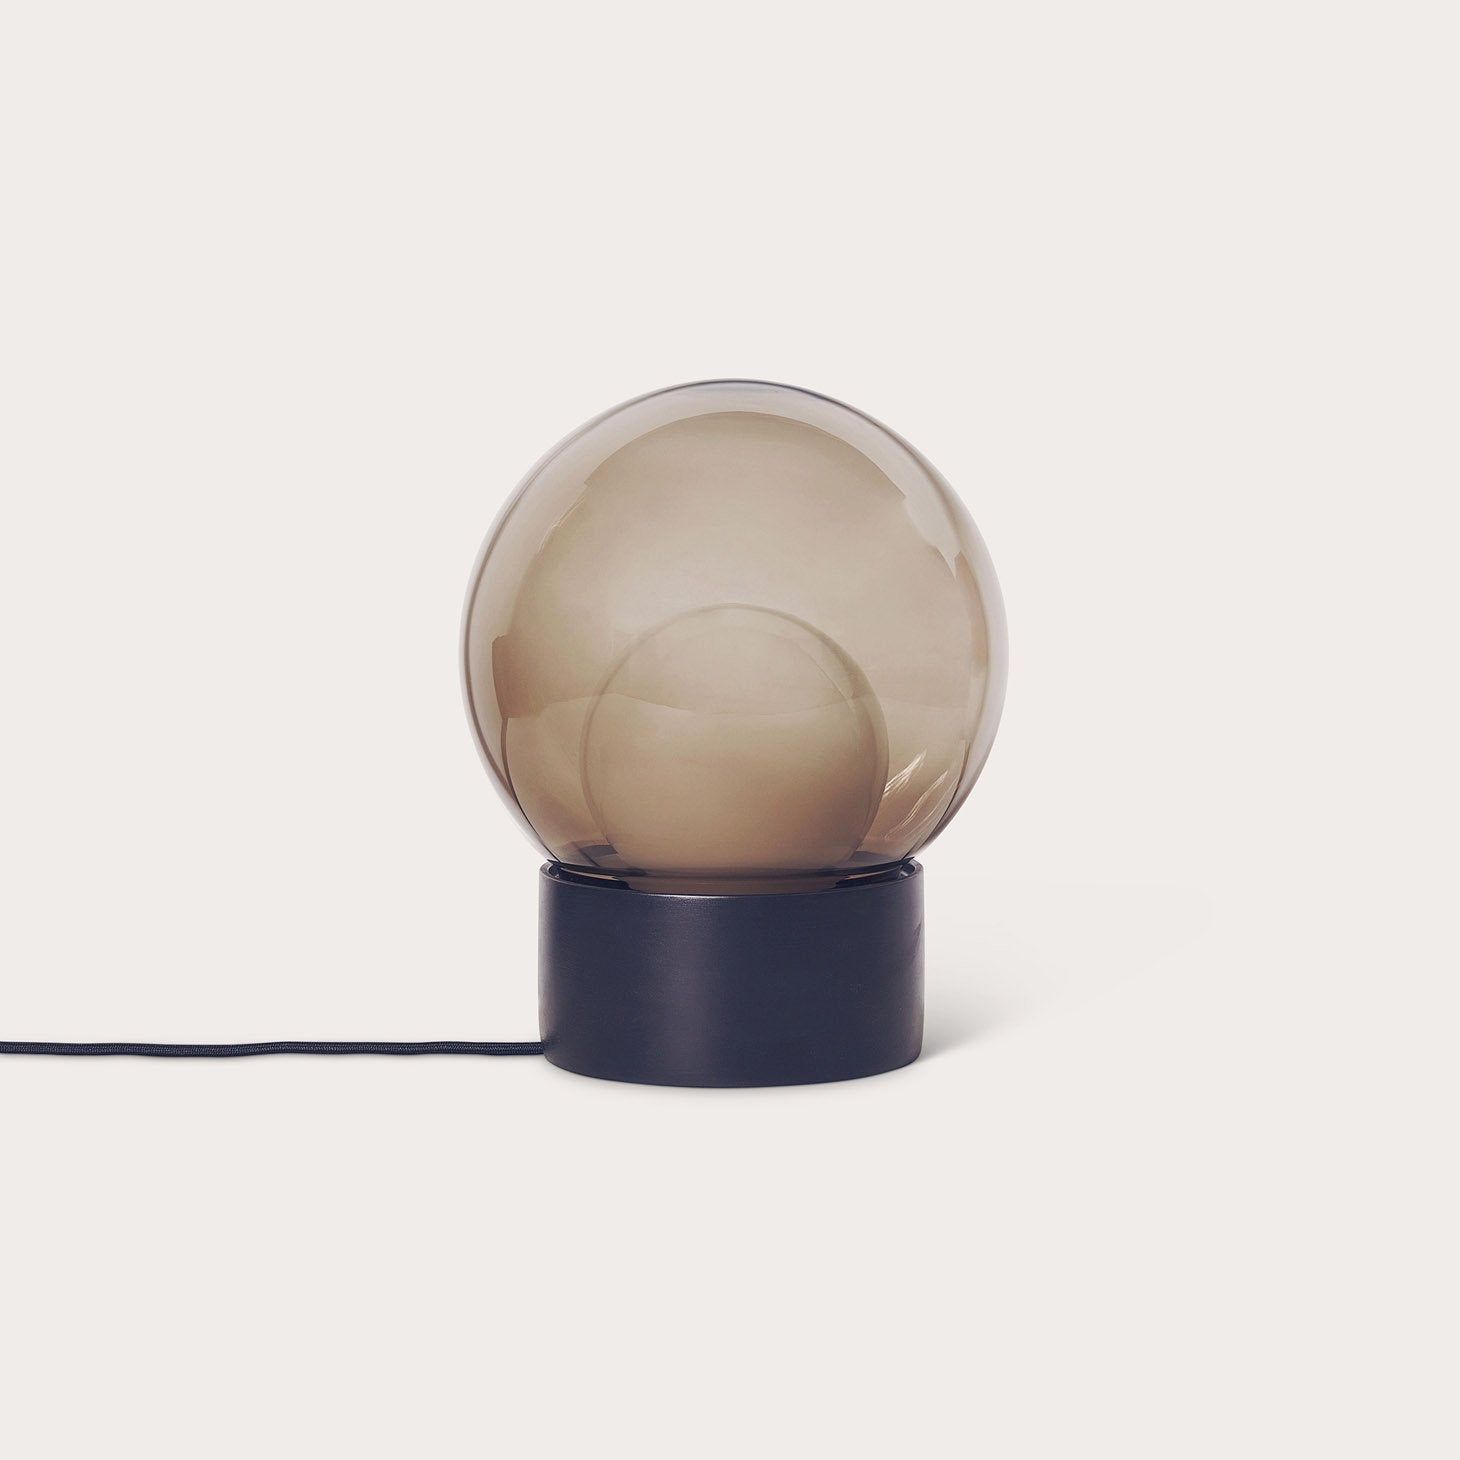 Boule Lighting Sebastian Herkner Designer Furniture Sku: 747-160-10037